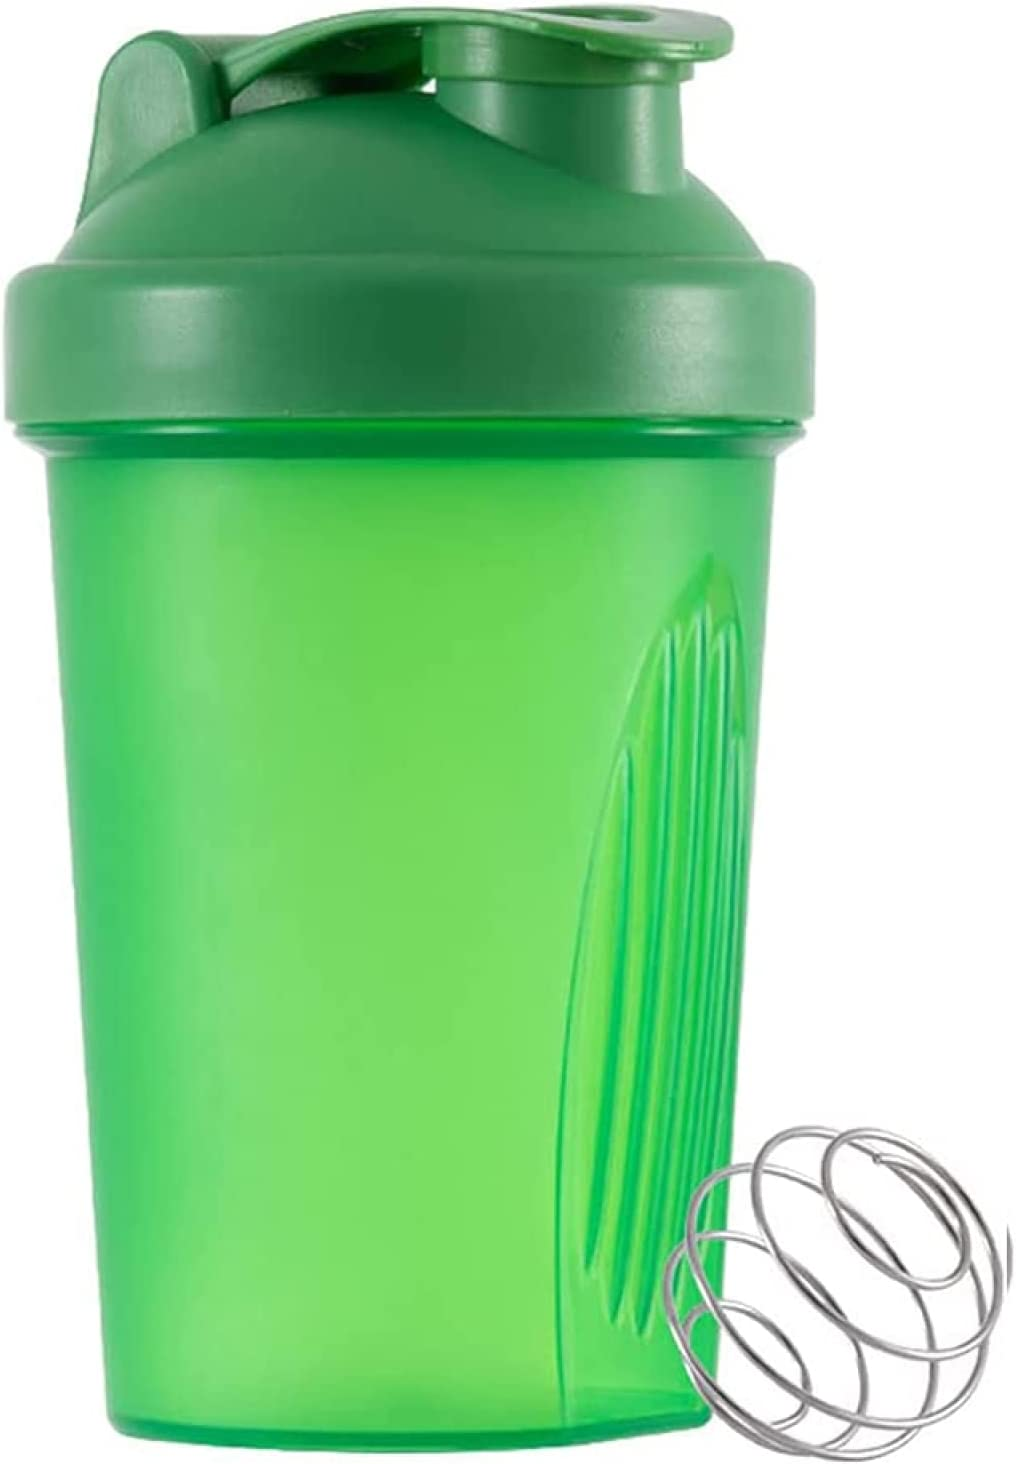 Maiges Lee Classic Excellence Manufacturer direct delivery Loop Top Shaker Bottle Mixer with Wire 400ML